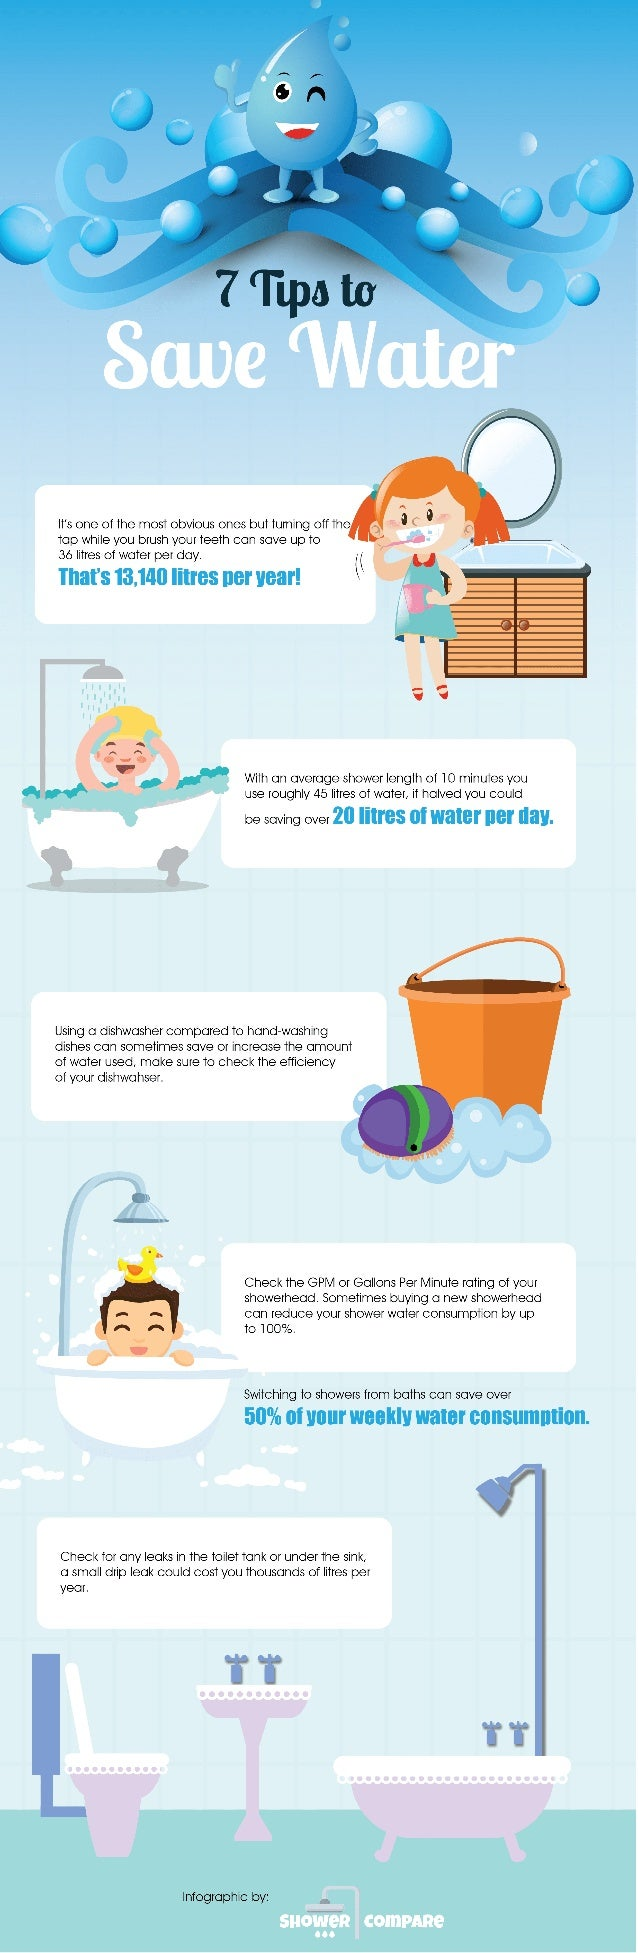 7 tips-to-save-water